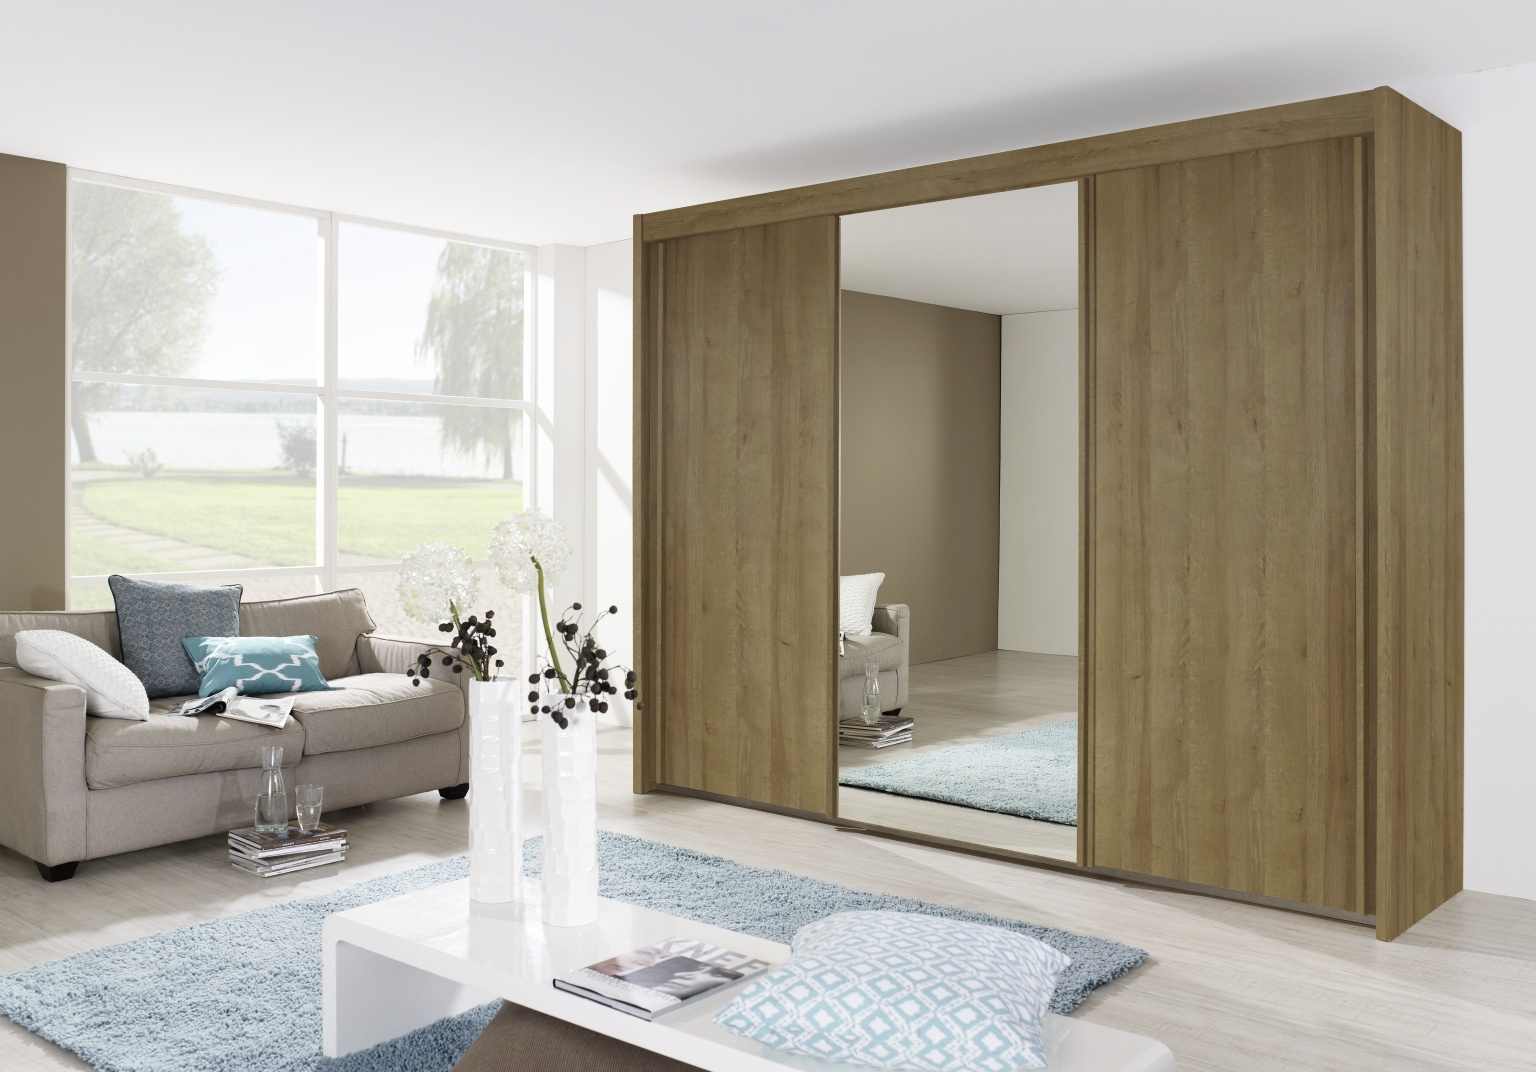 Rauch Imperial Rivera Oak 3 Door Sliding Wardrobe with 1 Mirror W 225cm